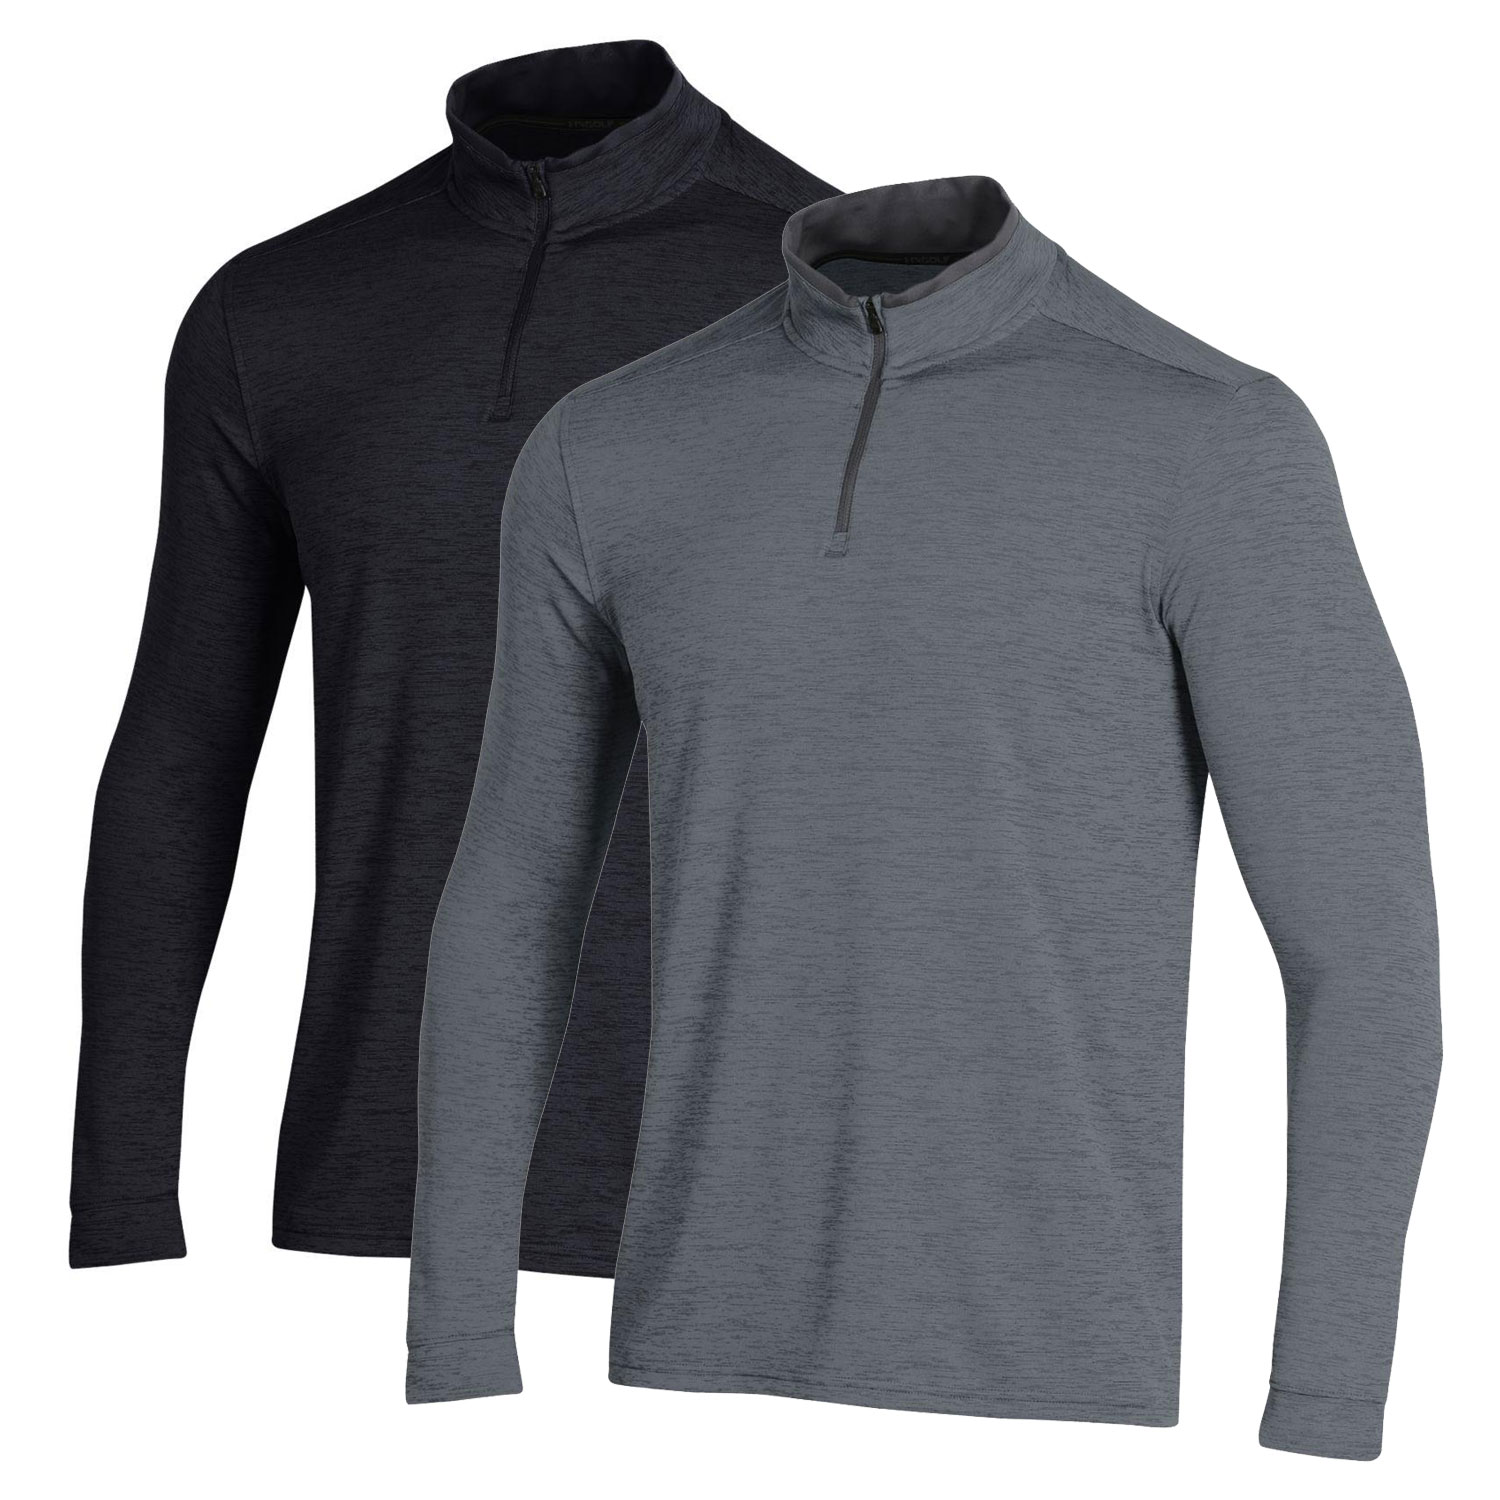 Under Armour Men's Playoff 2.0 1/4 Zip Pullover